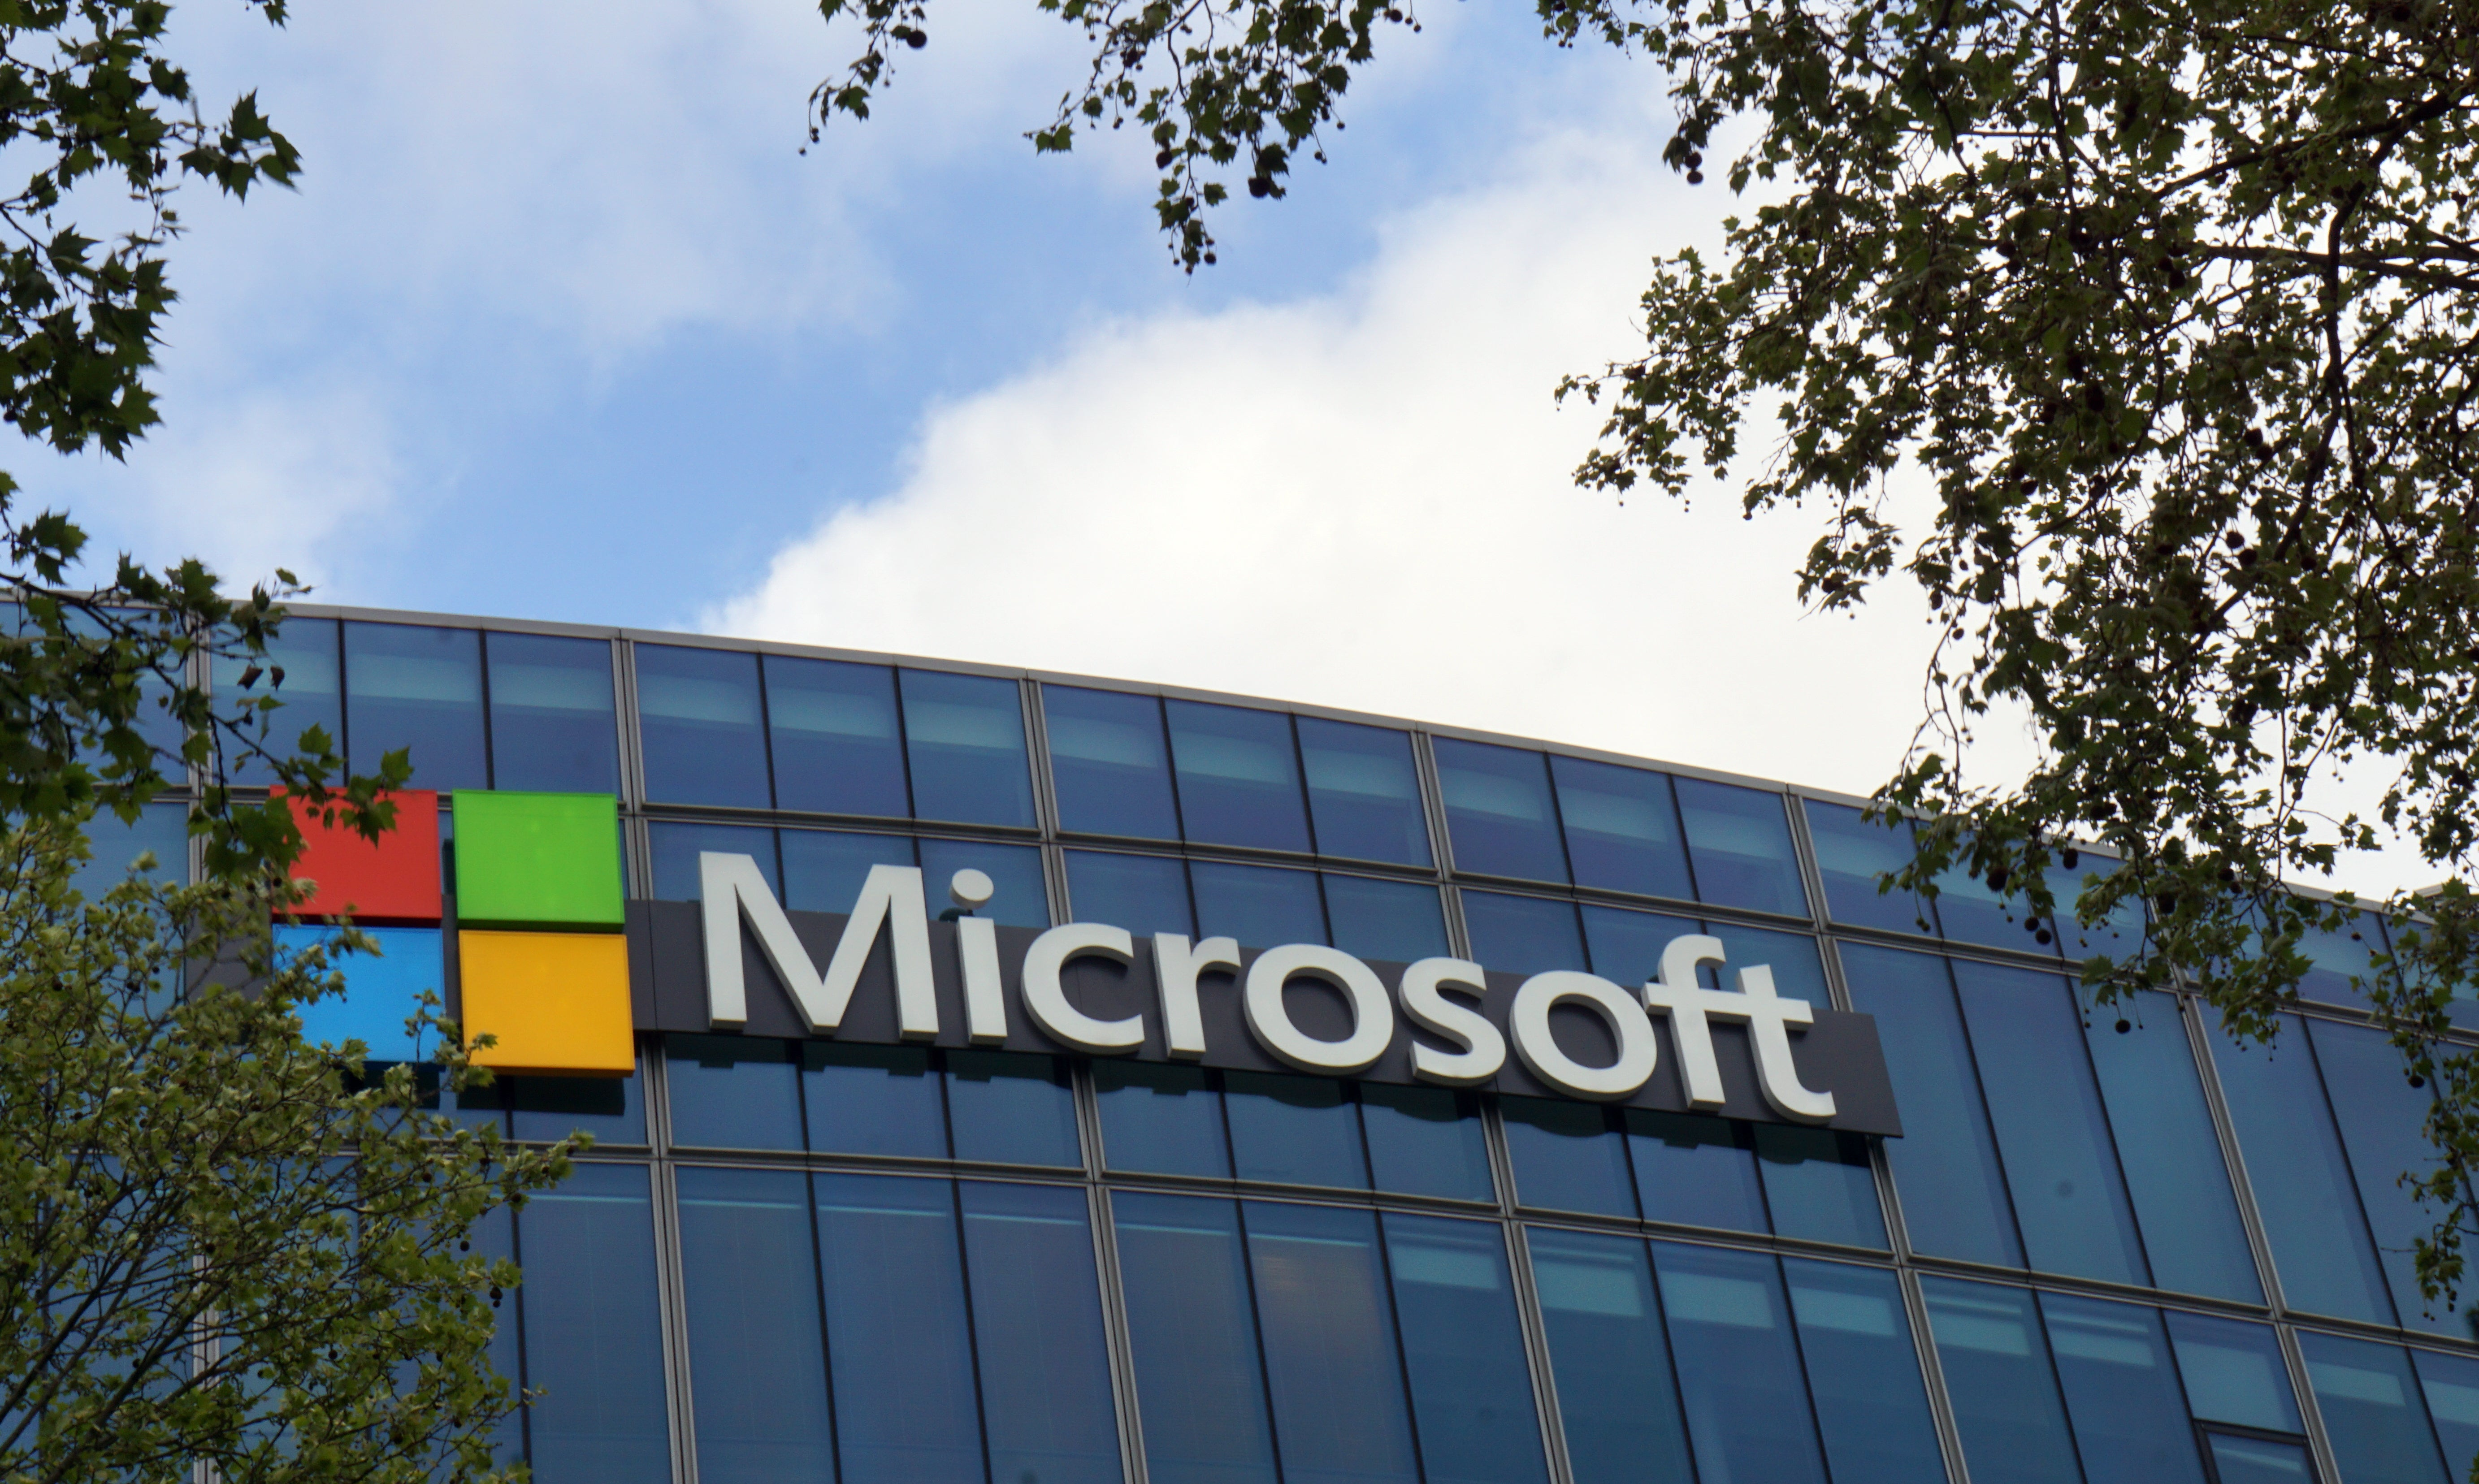 Employees Protest Microsoft Bid For Huge Military Contract, Saying It Could Cause 'Human Suffering'